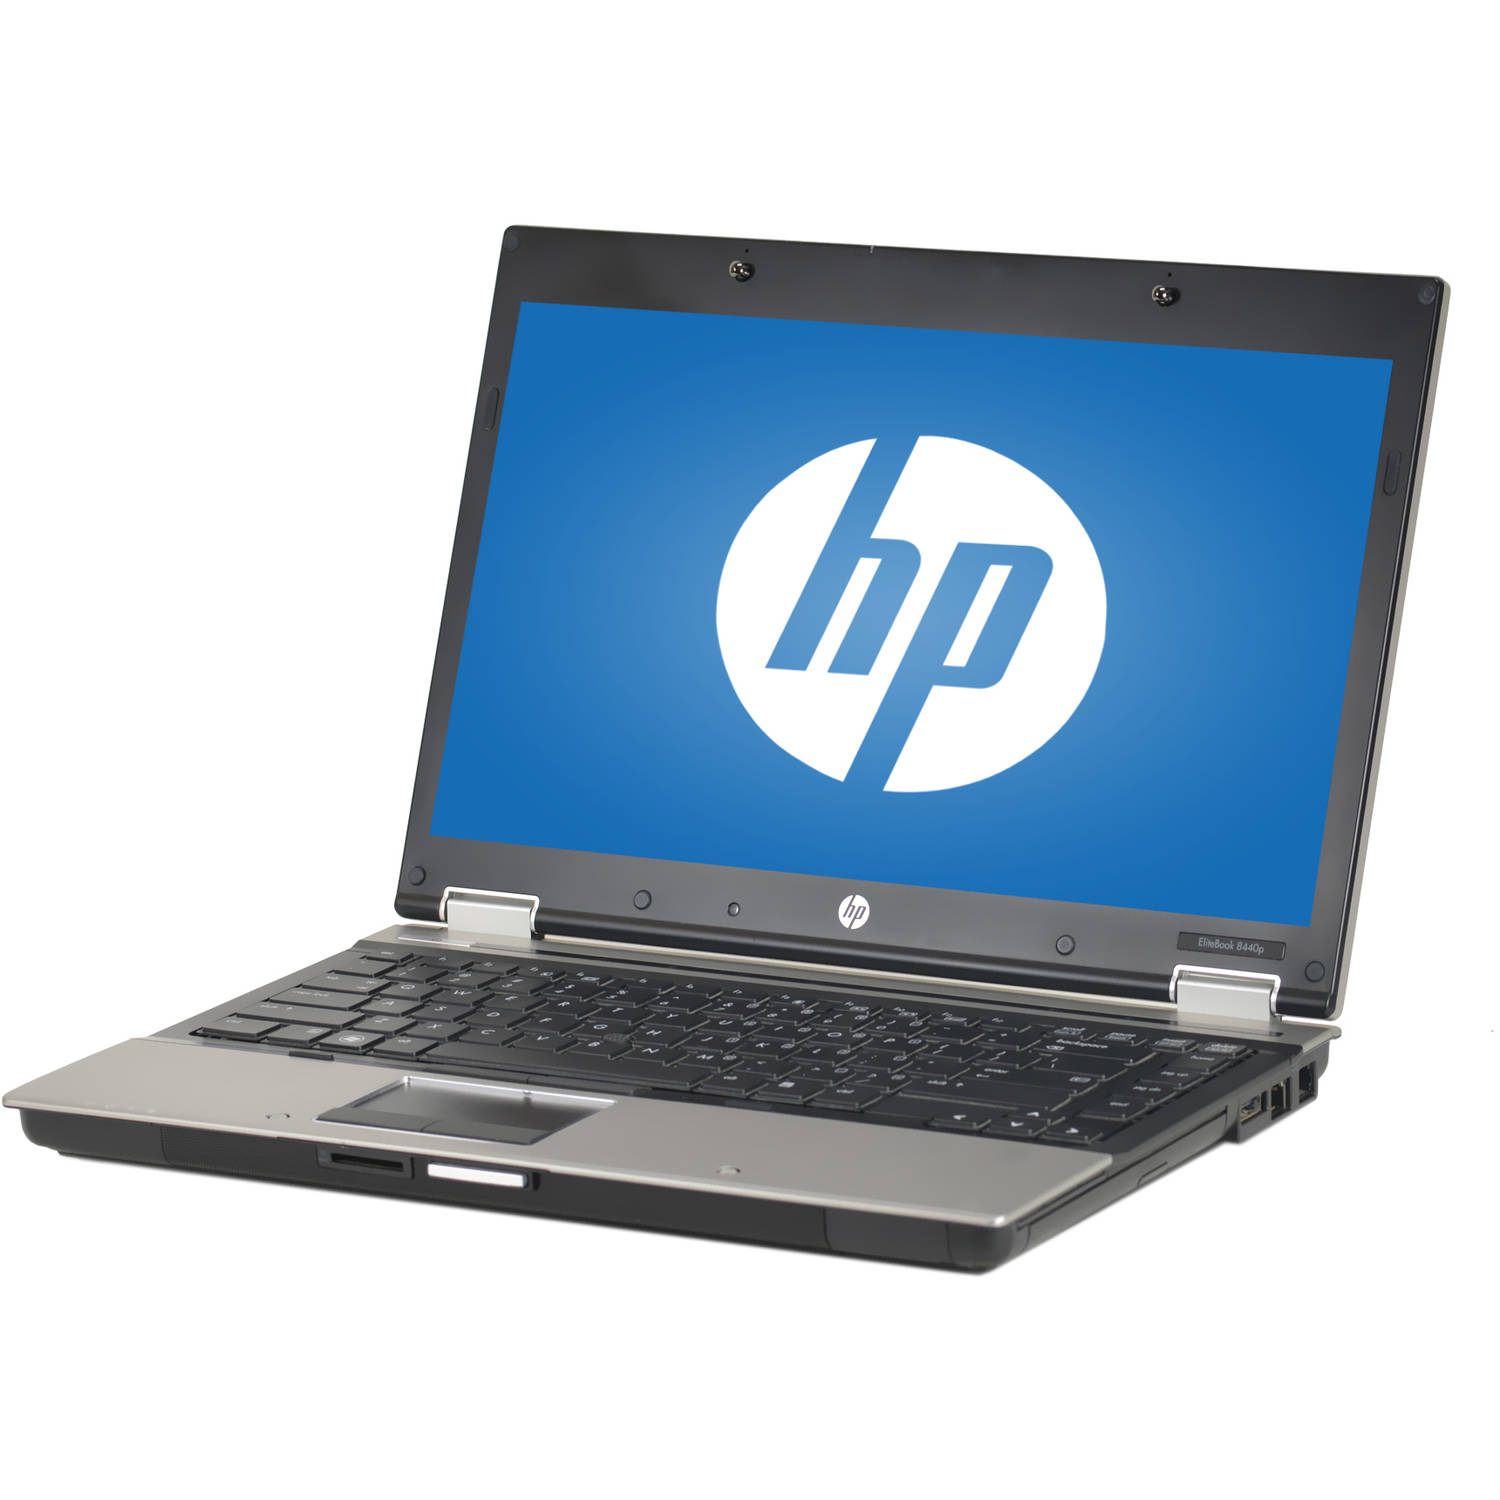 "Refurbished HP Silver 14.1"" EliteBook 8440P Laptop PC with Intel Core i5-520M Processor, 8GB Memory, 750GB Hard Drive and Windows 10 Home"